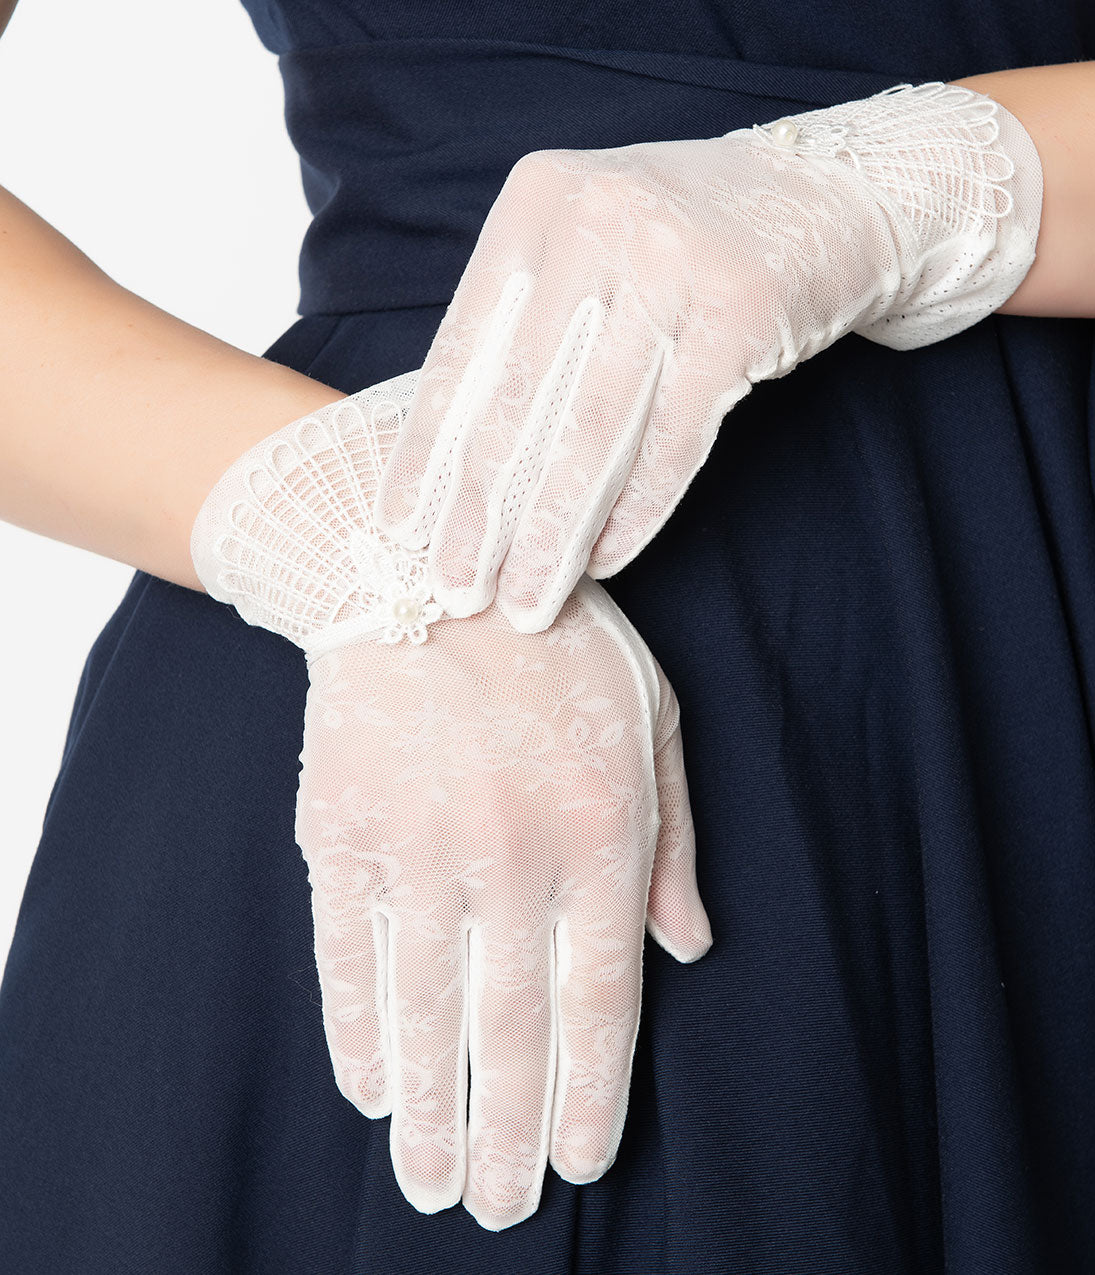 Vintage Style Gloves- Long, Wrist, Evening, Day, Leather, Lace Unique Vintage White Deco Floral Mesh Wrist Gloves $22.00 AT vintagedancer.com